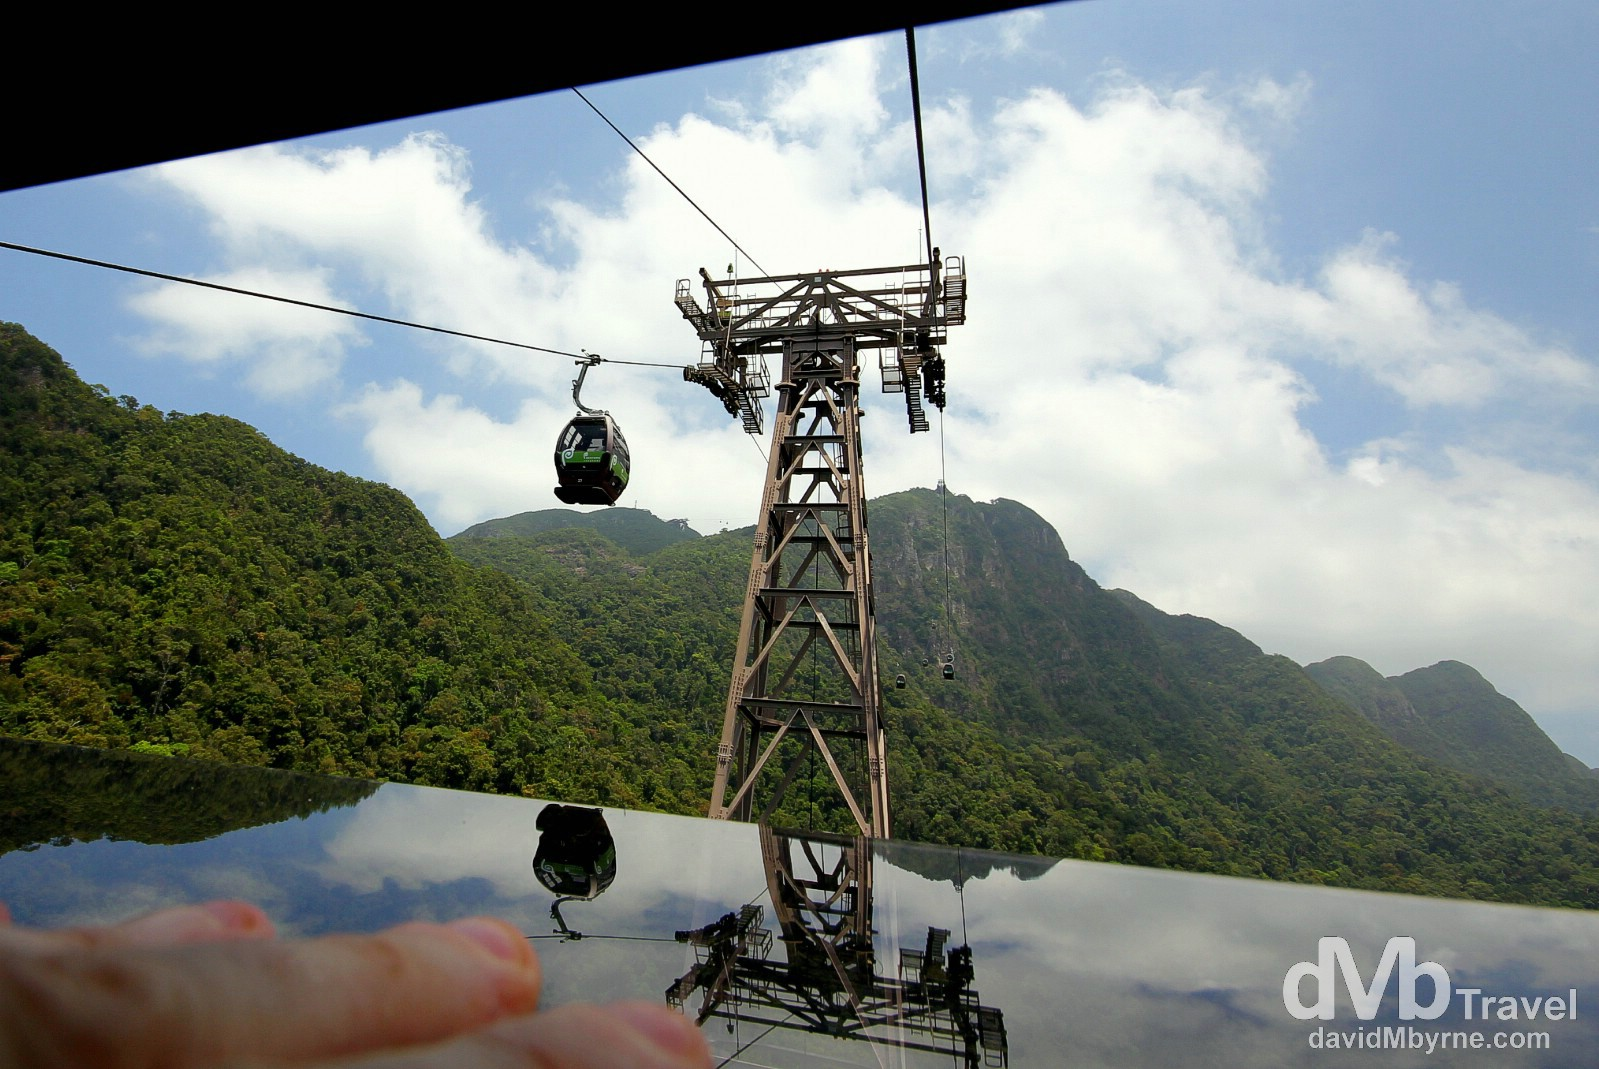 This is a picture taken through a narrow cap in a window of the Langkawi Cable Car, the most popular tourist attraction on the island. I was ascending when I took this & needed to keep the spring-mounted window open with my left hand (bottom left) while holding the camera with my right. I'm a sucker for reflections so of course I particularly like the reflections seen here; I feel they detract from the poor mountain visibility caused by low-lying haze emanating from, I assume, the jungle floor below. In the distance, beyond the mammoth 70m-high Tower 2 as seen here, is the longest free span section of the whole 2.2km cable car ride, the 950m stretch between the tower up to the Middle Station. Gunung Machinchang, Langkawi Island, Malaysia. March 22nd 2012.